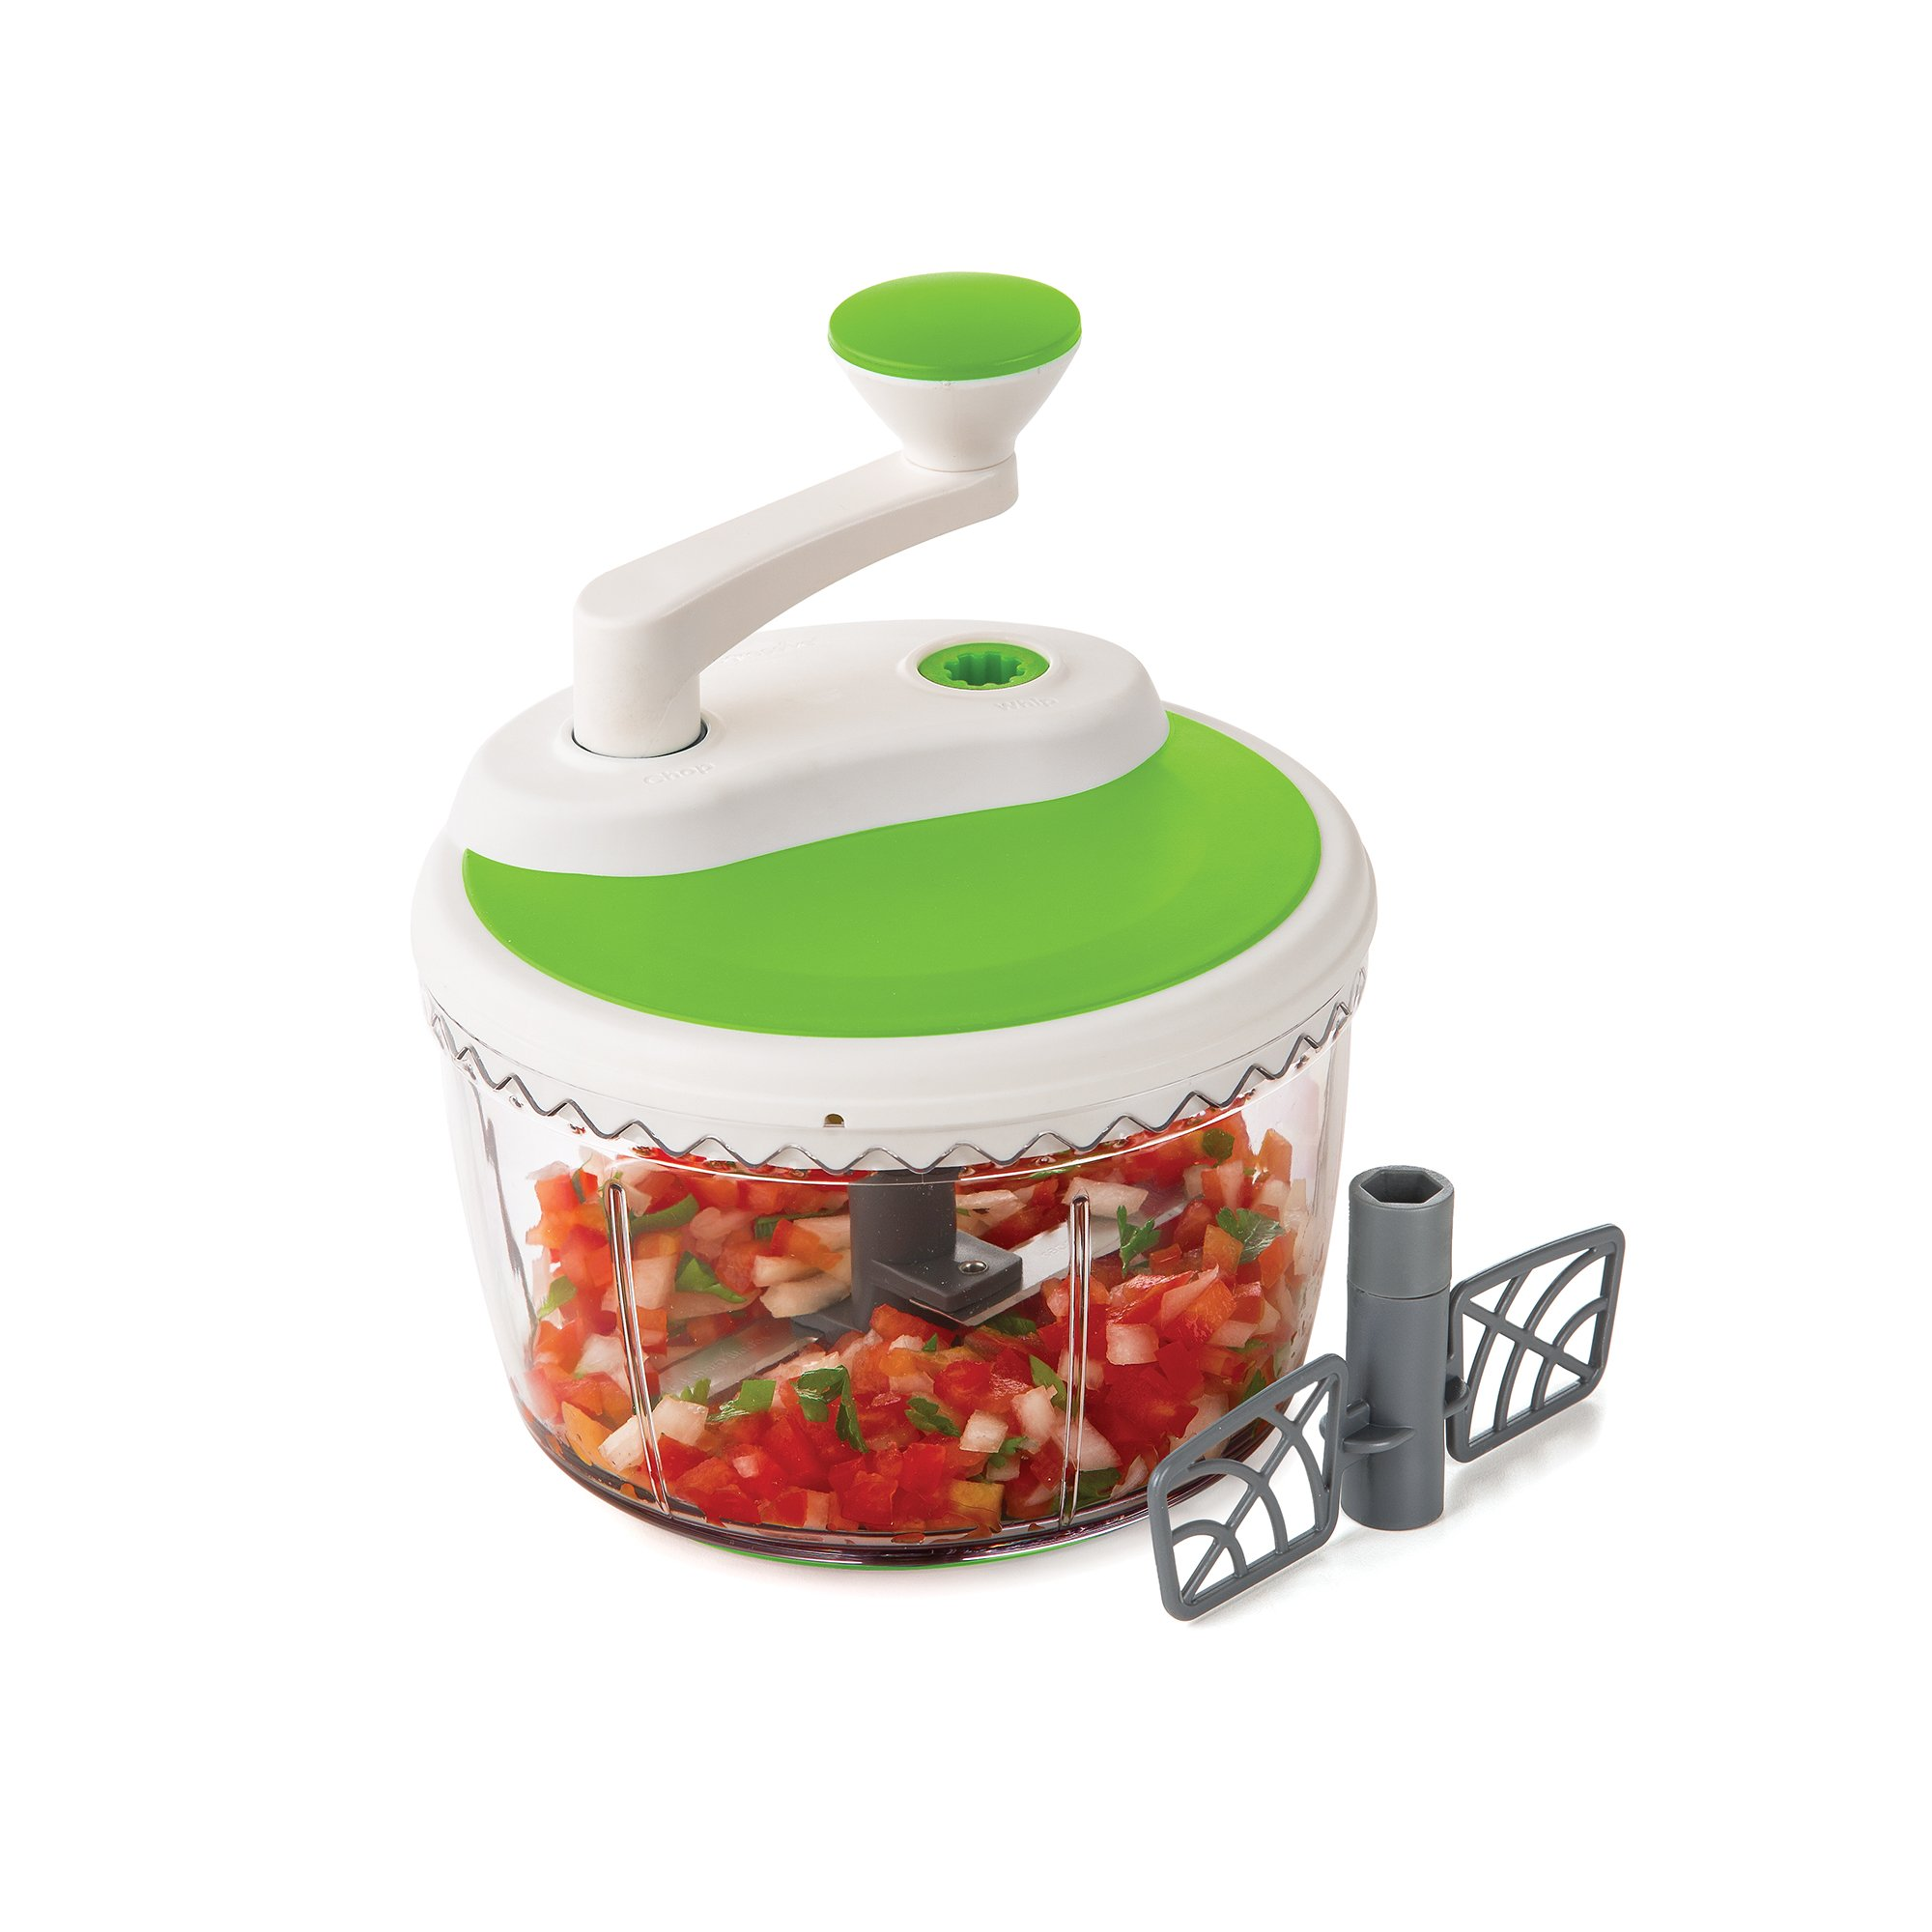 Prepworks by Progressive Dual Speed Chop & Whip, Two Speed Settings, Non-Skid Base, Whip Cream, Dressings, Mincing Onions, Salsa, Mixer, Vegetables, Coleslaw by Progressive International (Image #7)